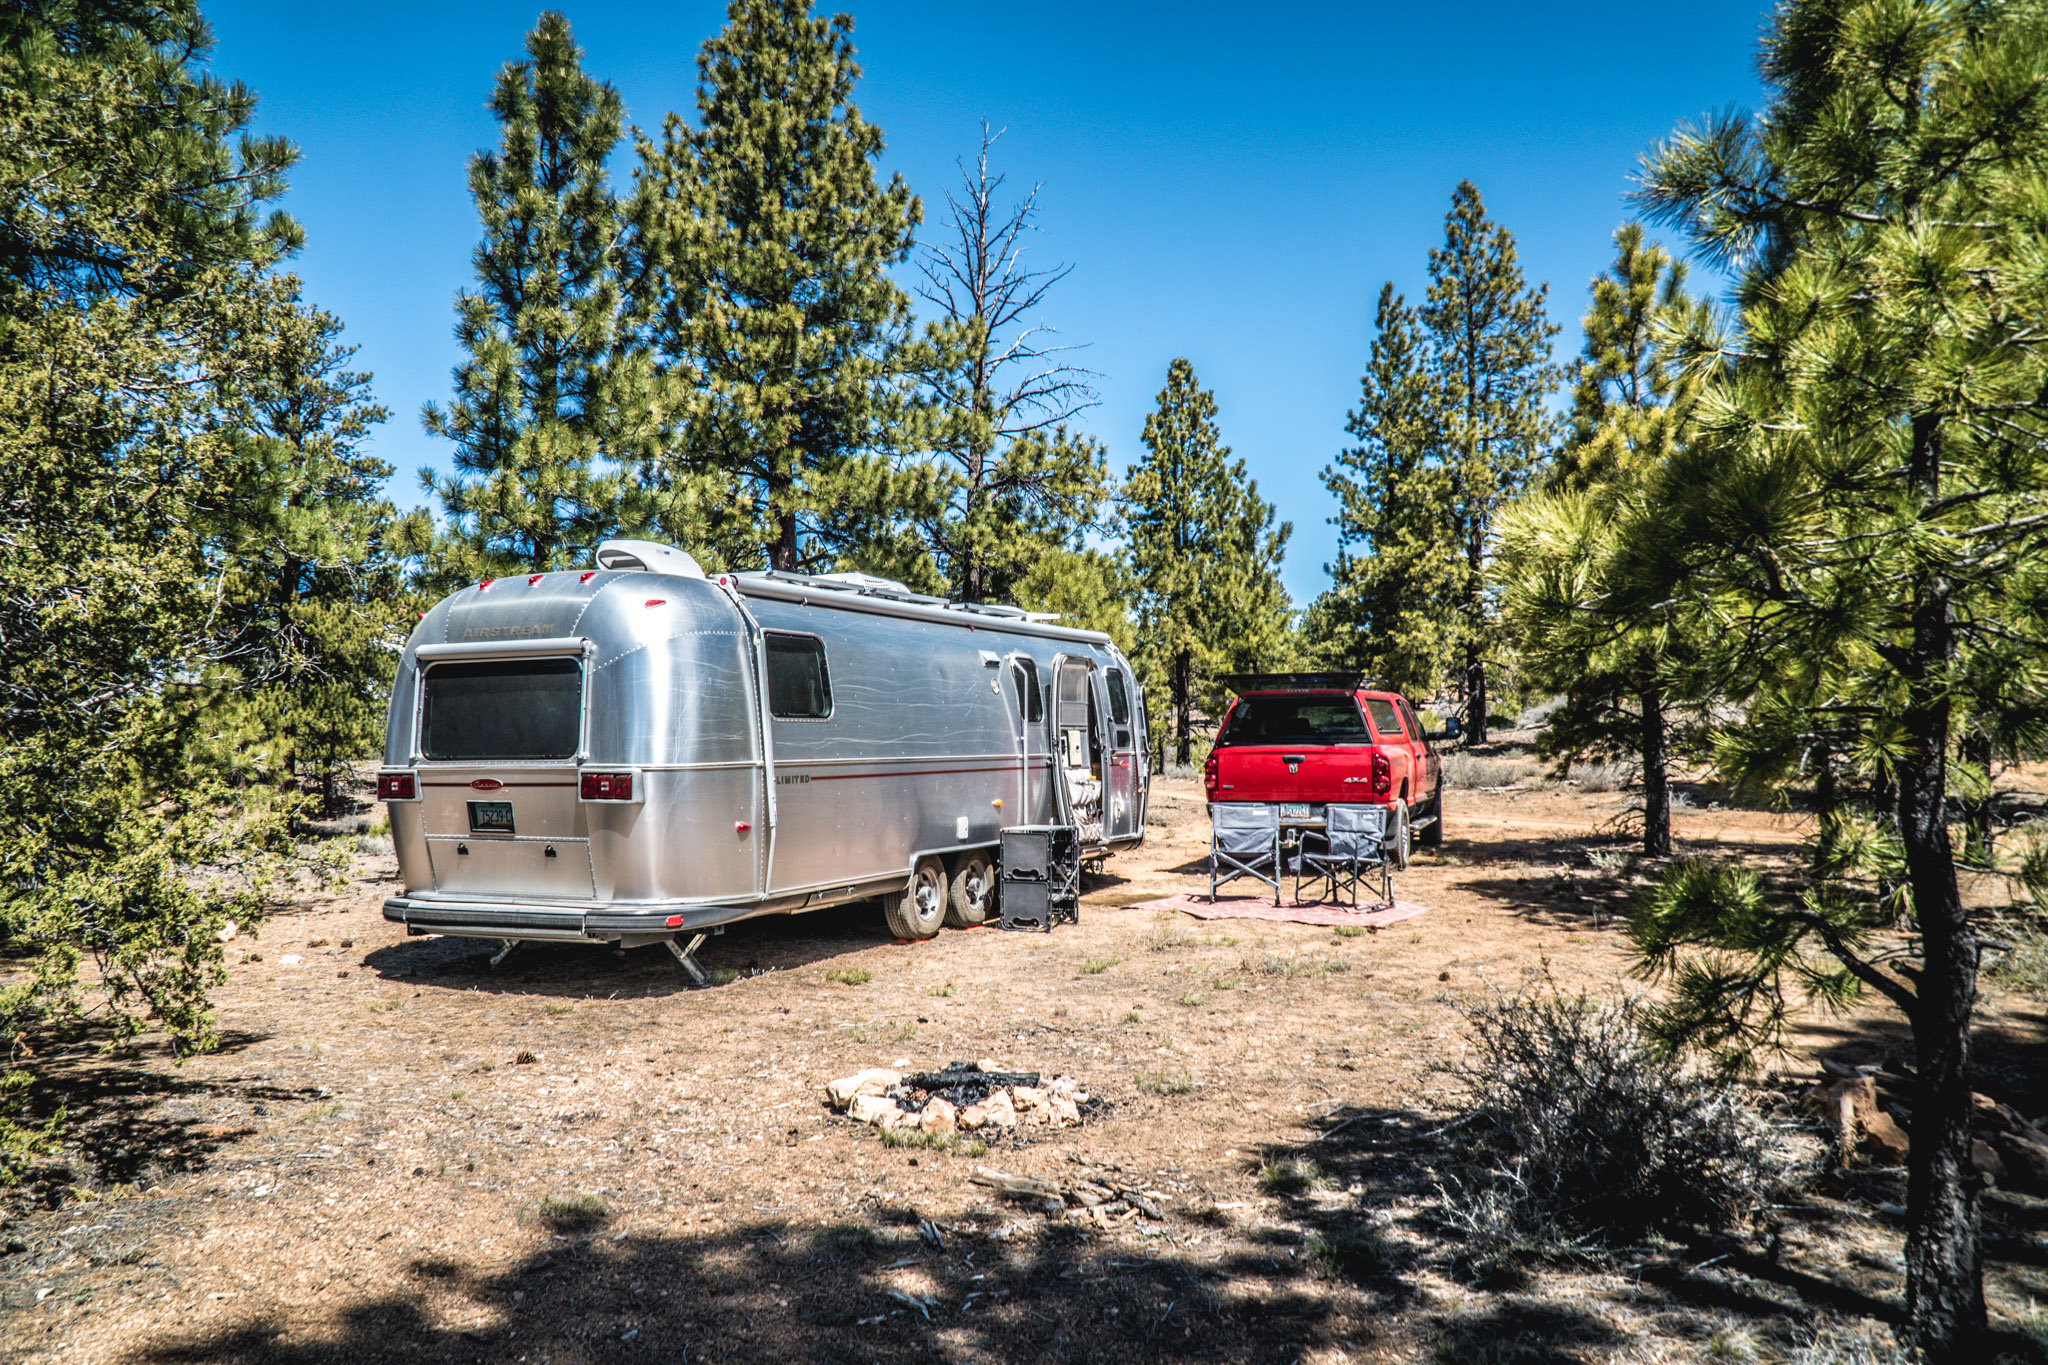 Looking to buy an RV? Here is my #1 RV buying tip